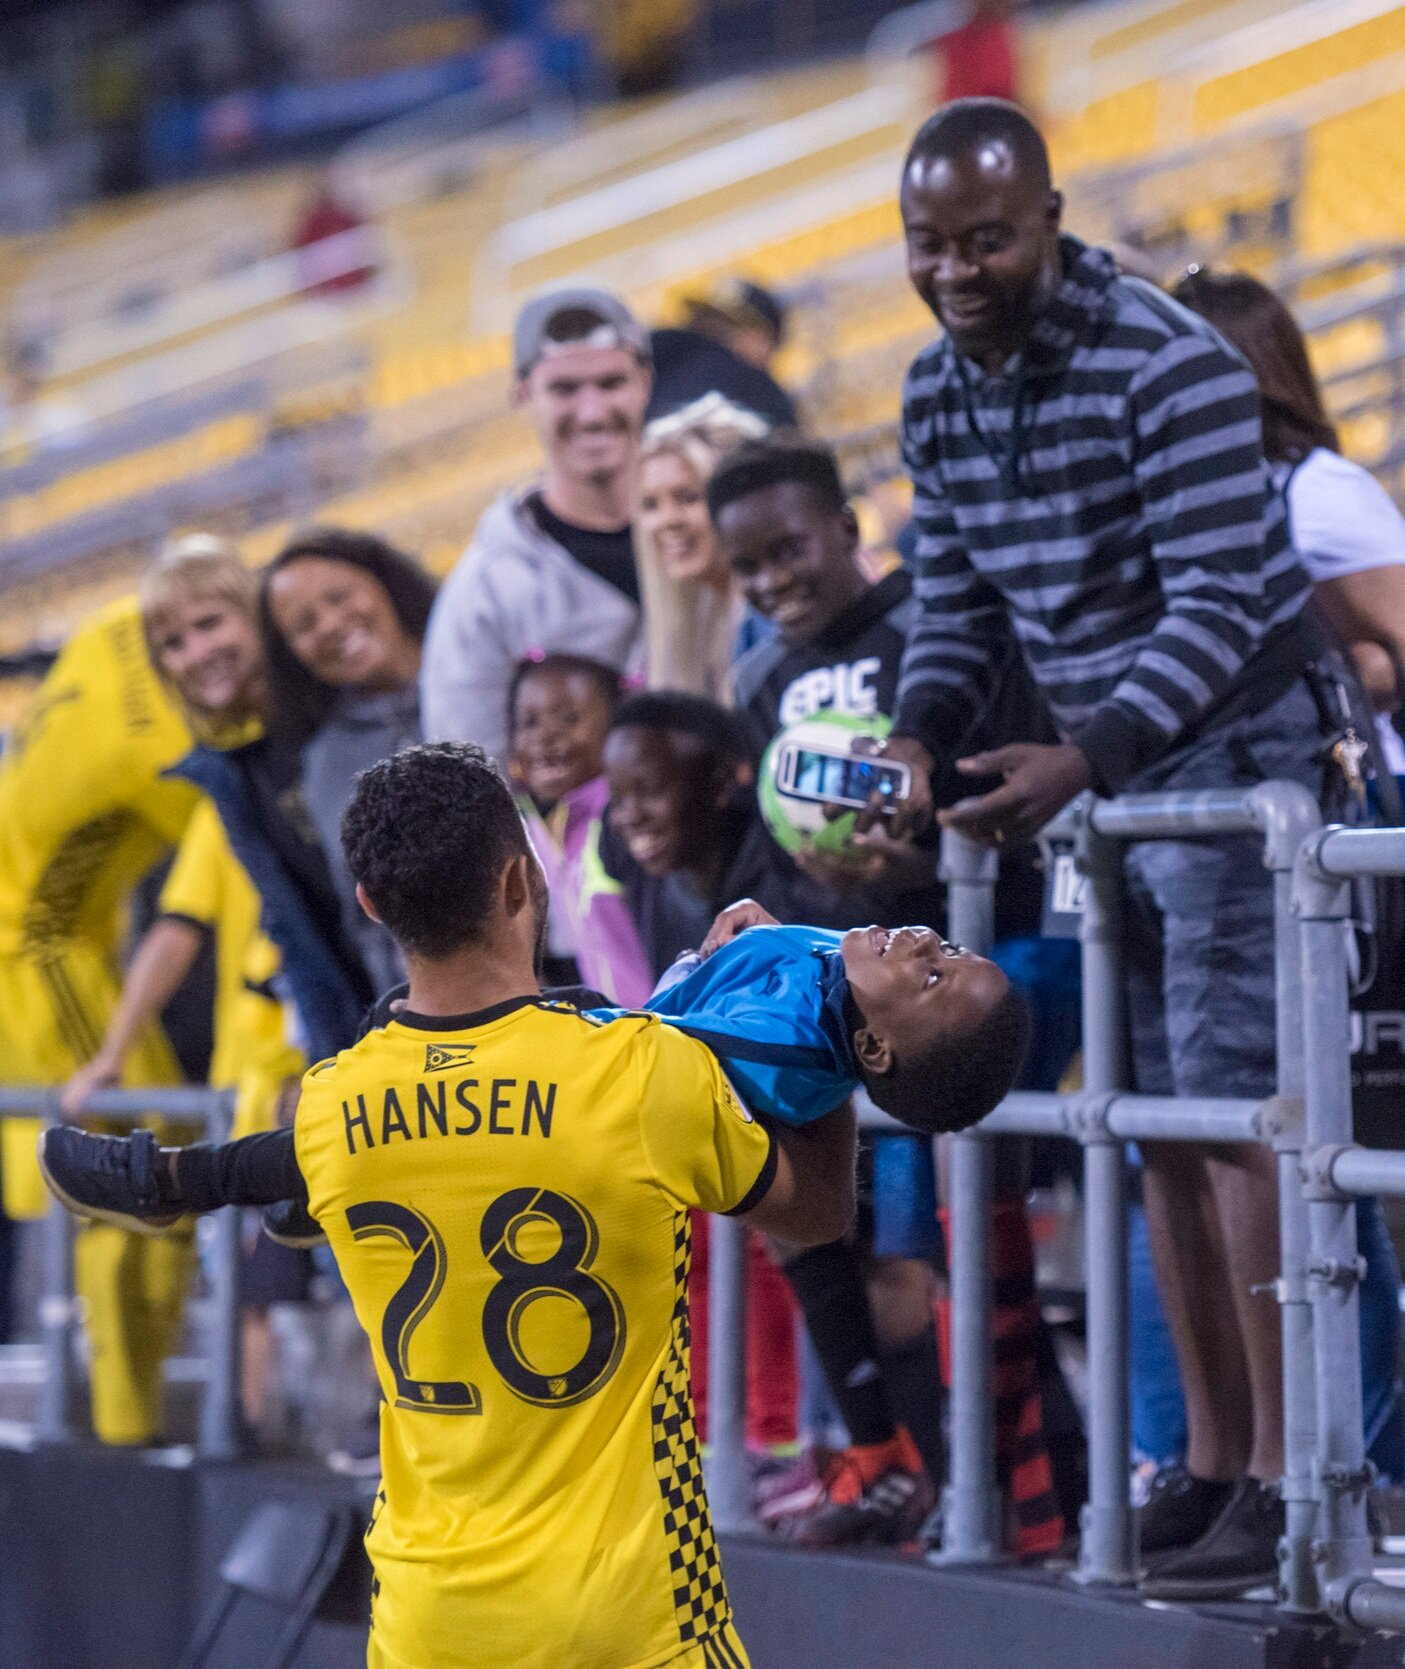 Columbus Crew forward Niko Hansen carries a child back to his family after the child jumped the barrier surrounding the field following the game against the Colorado Rapids.